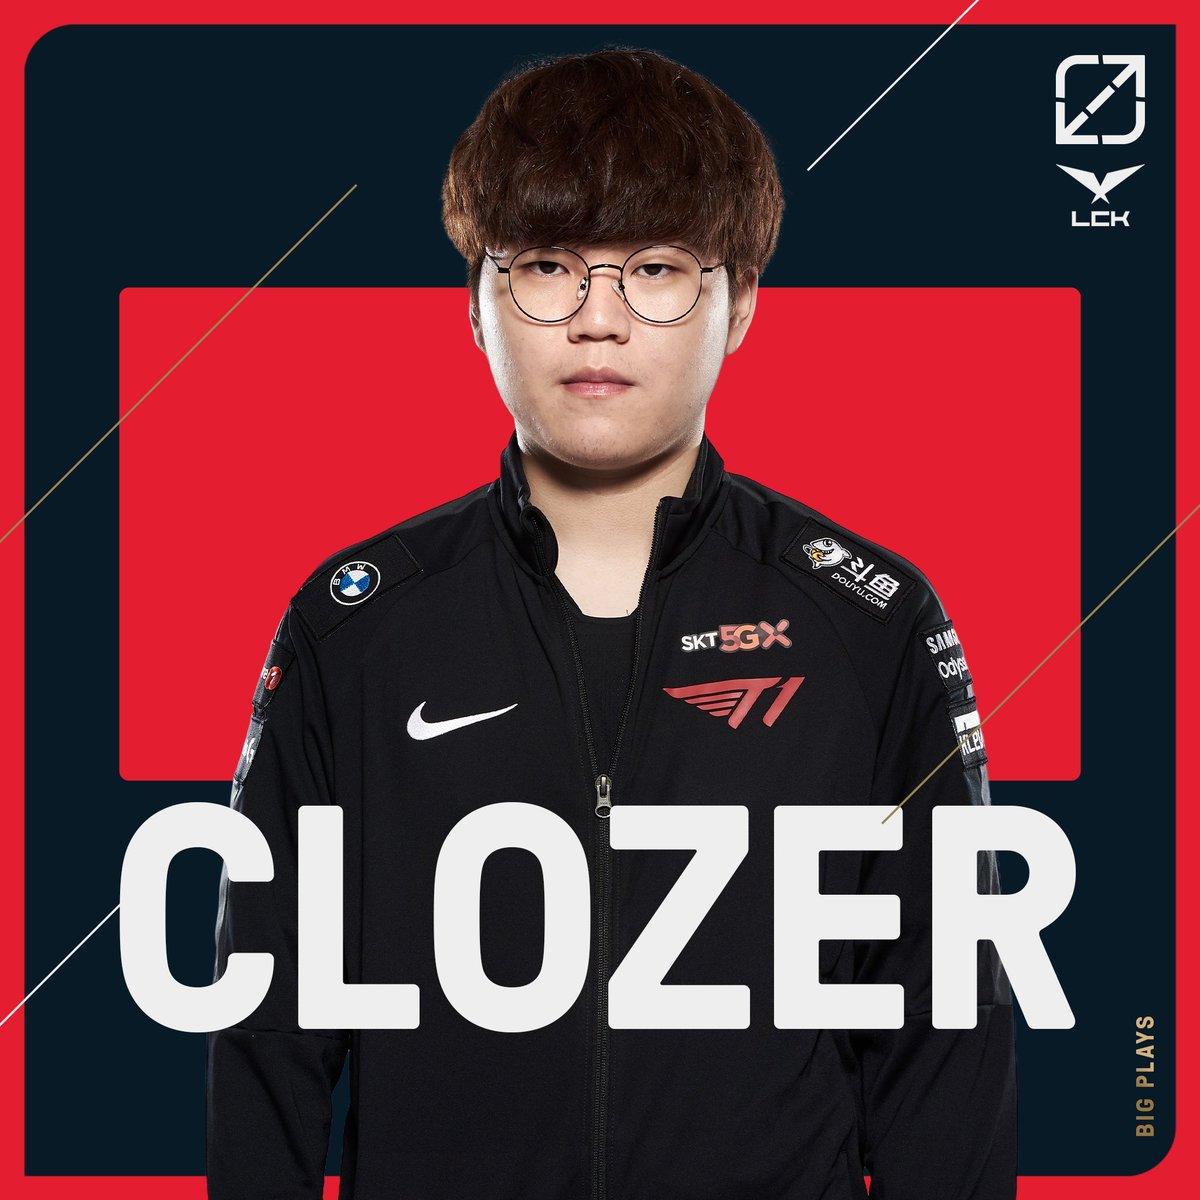 lck - Clozer destroys the team fight in T1's win against HLE! #LCK